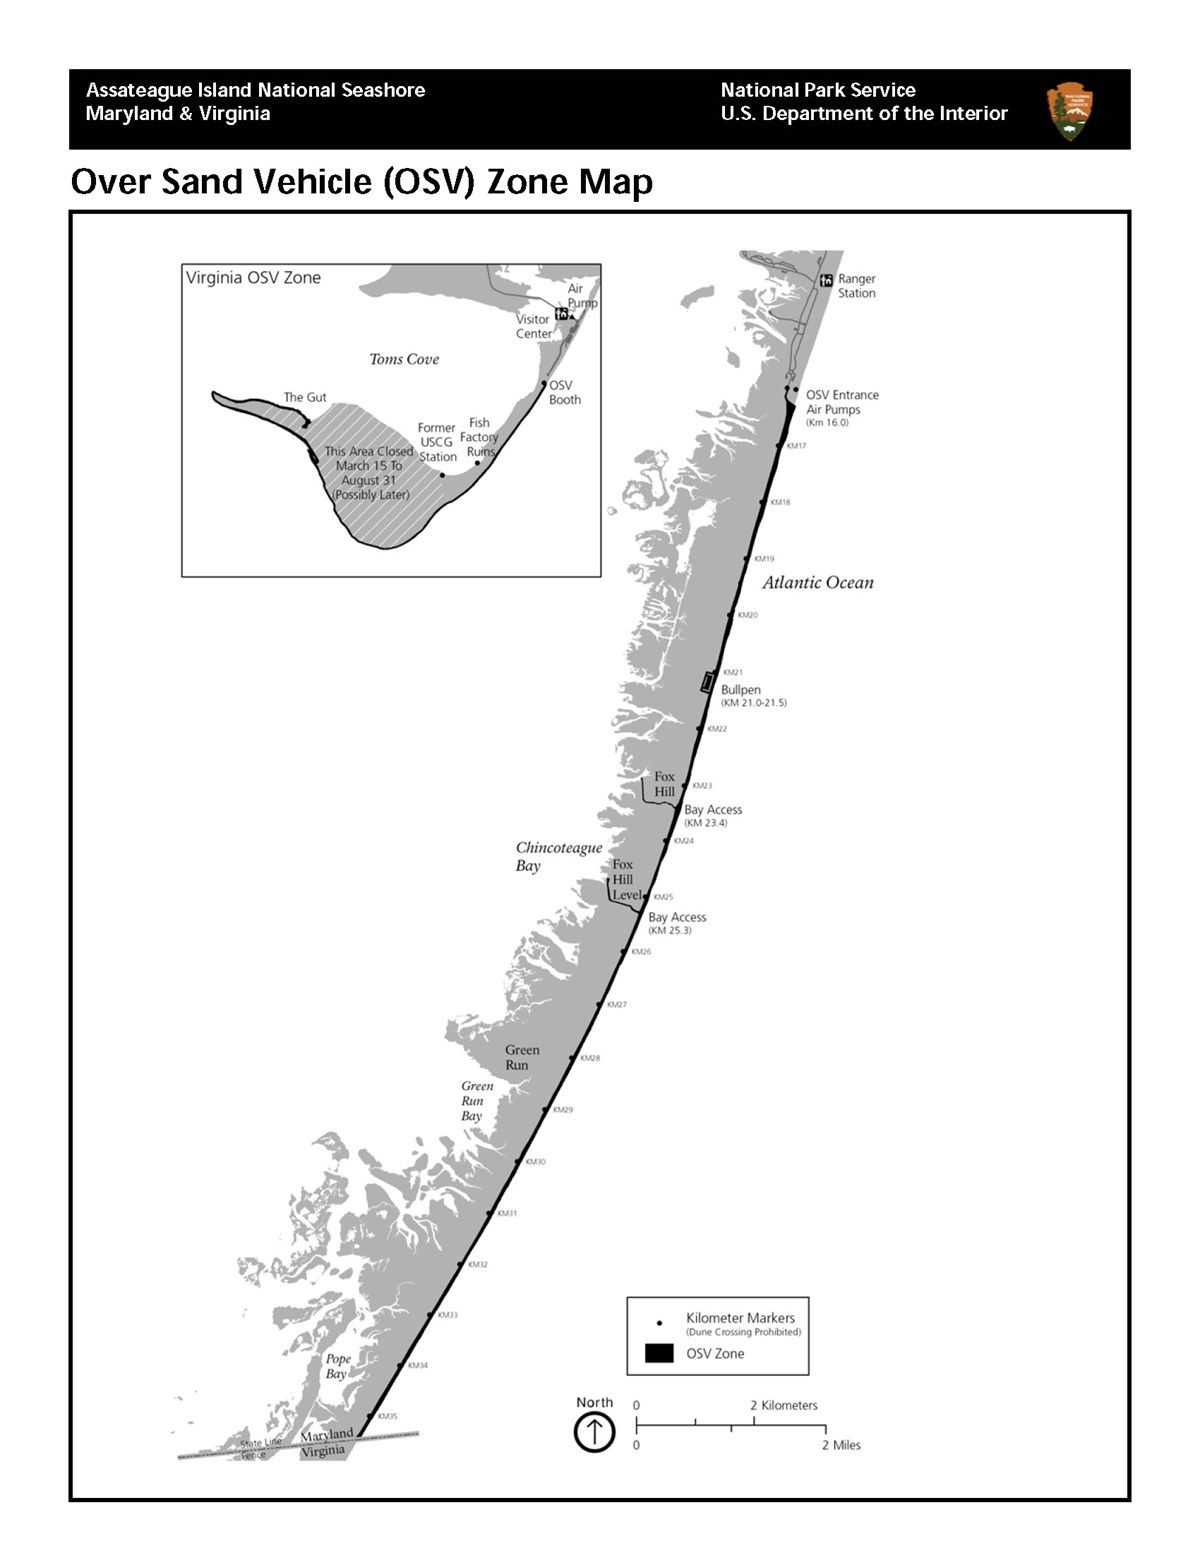 Map showing Over Sand Vehicle Zones (OSV) in Maryland and Virginia